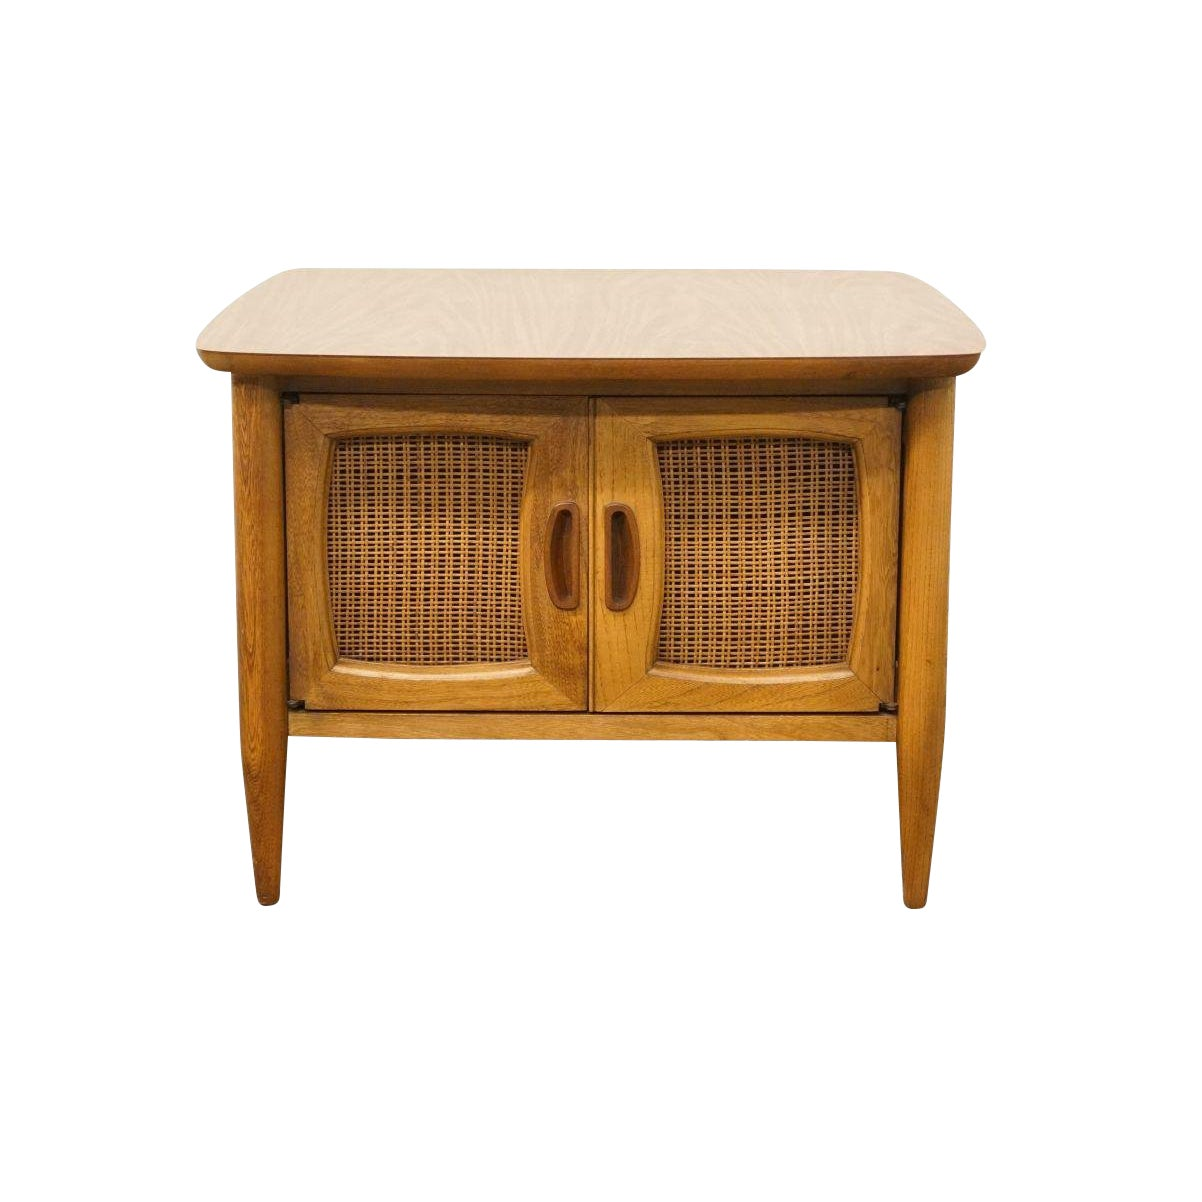 Late 20th Century Vintage Lane Furniture Side Table